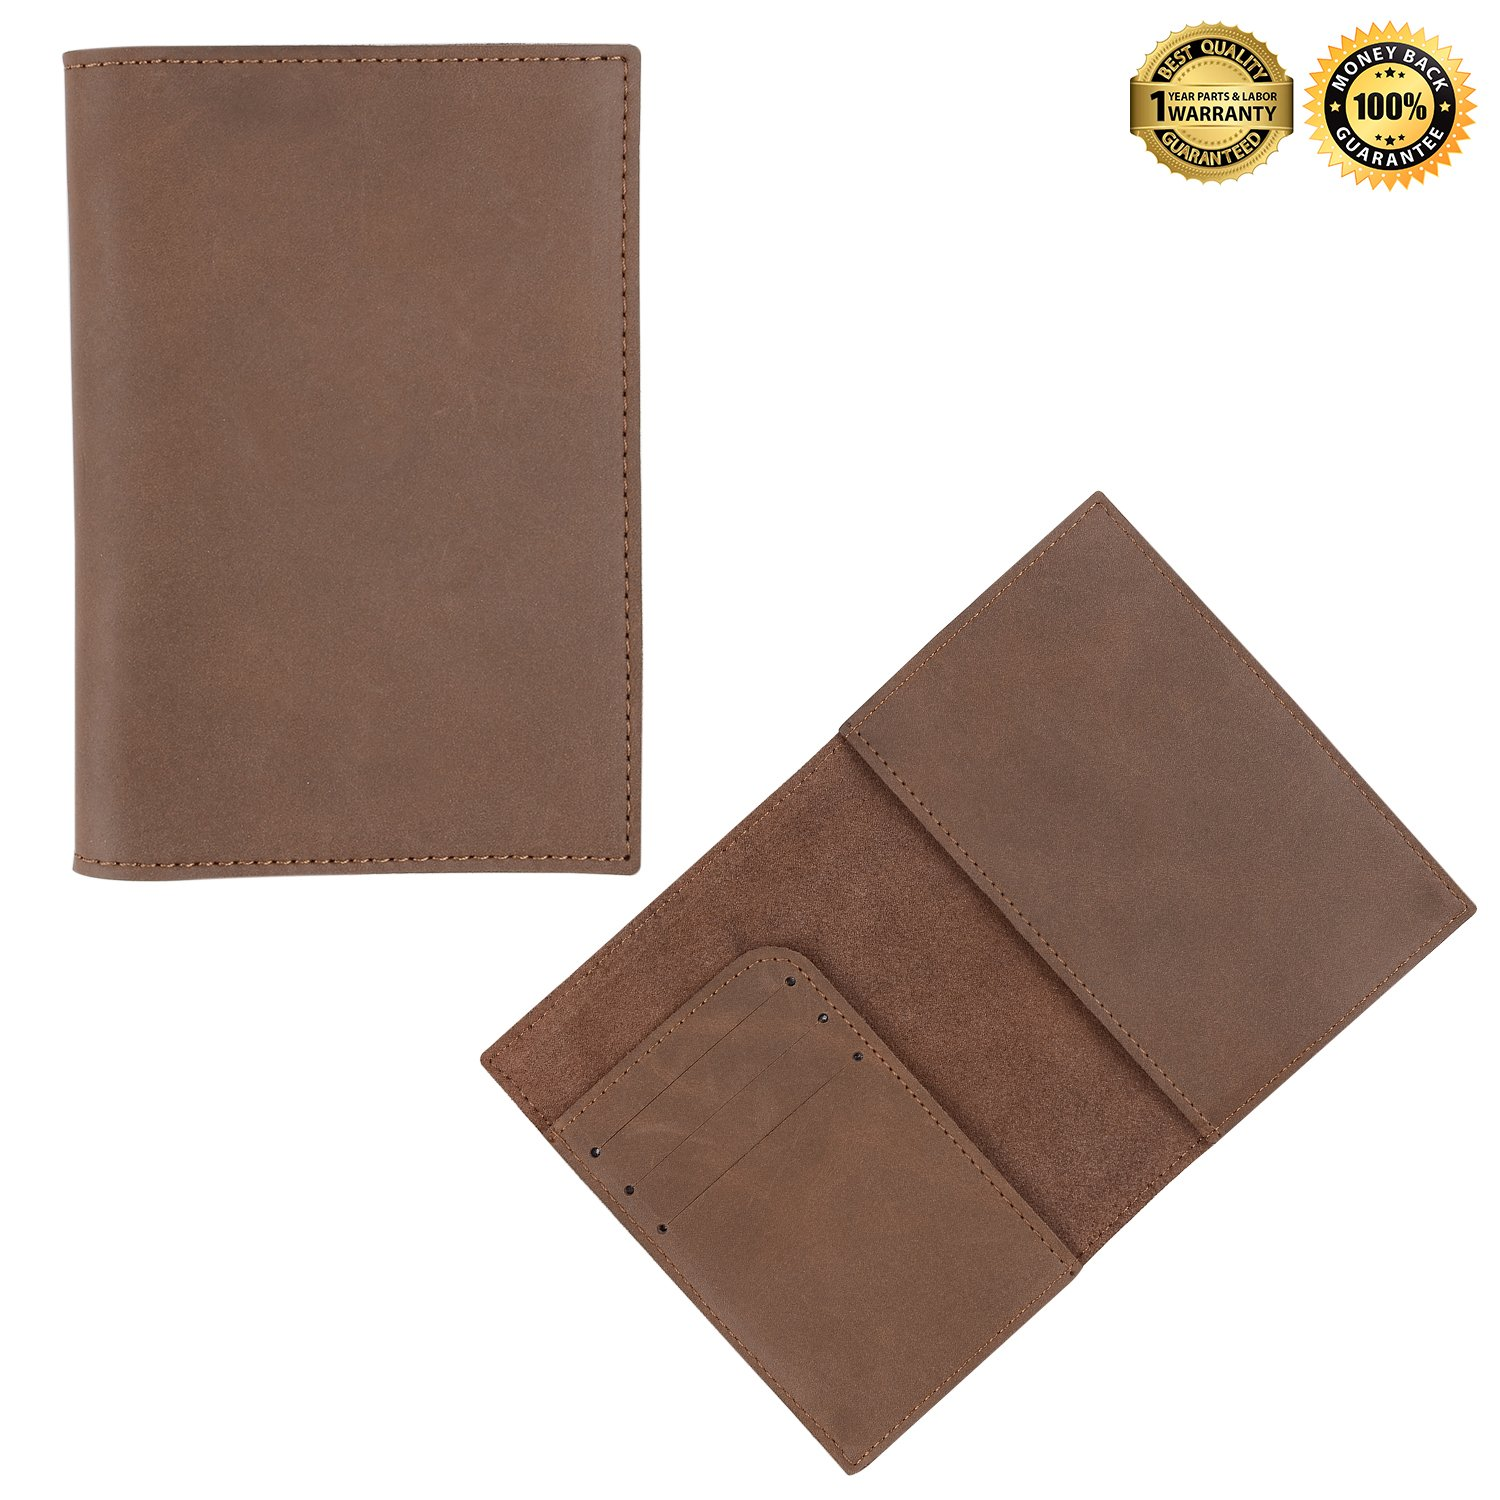 Leather Passport Holder Passport Cover Case Wallet for Men Women Travel (brown 2)